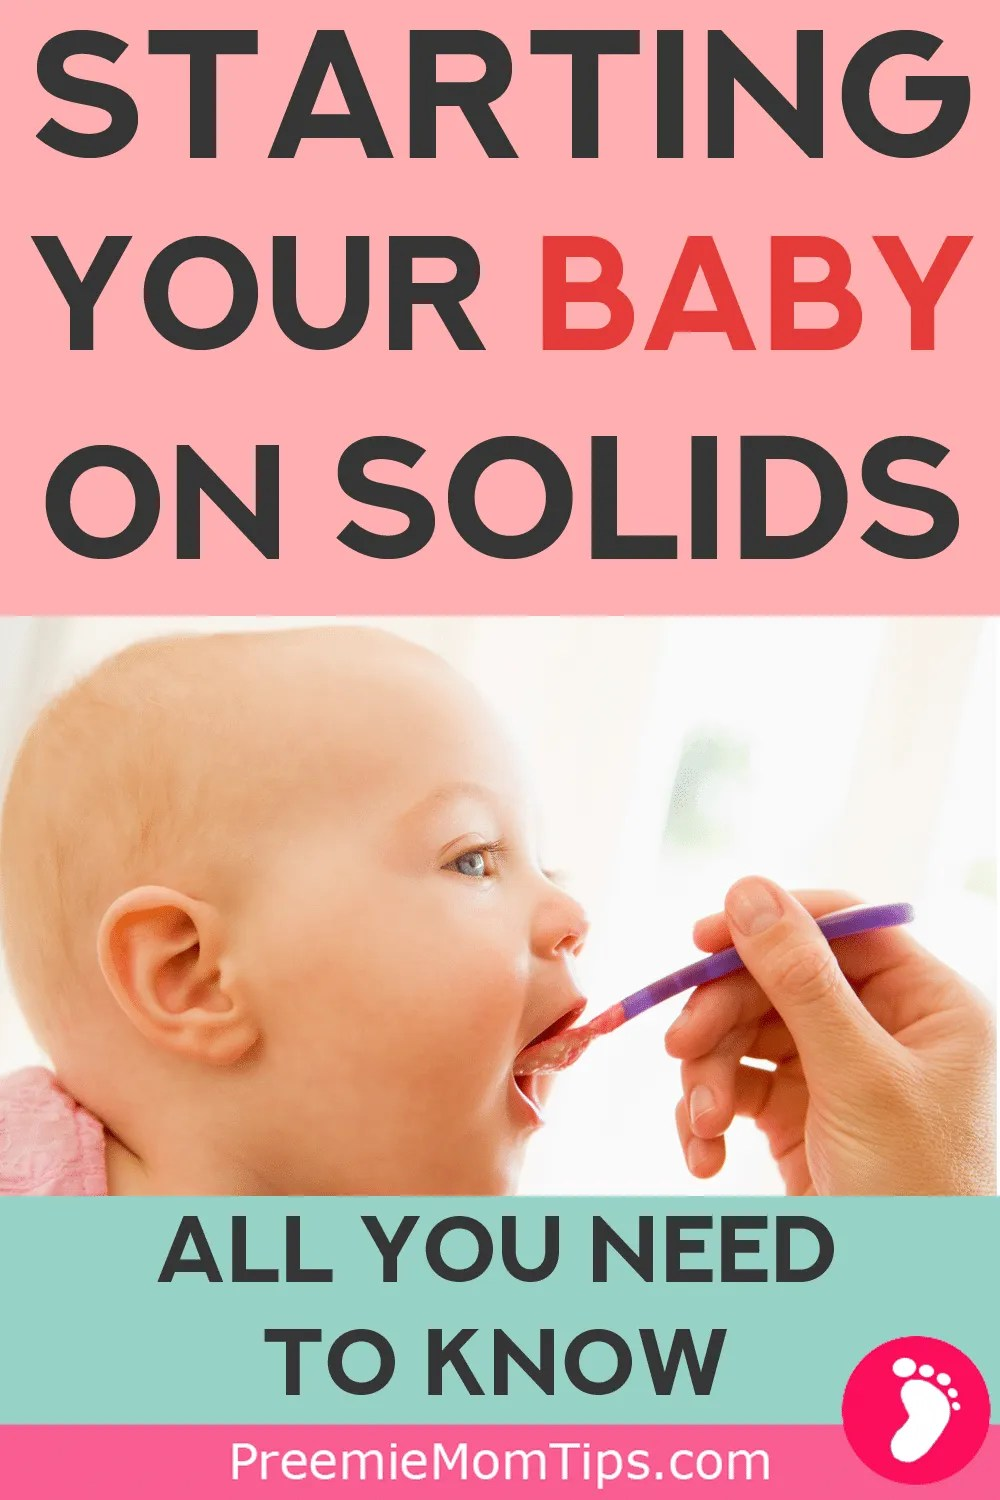 Everything you need to know about starting your baby on solids. A complete guide for new moms and dads.